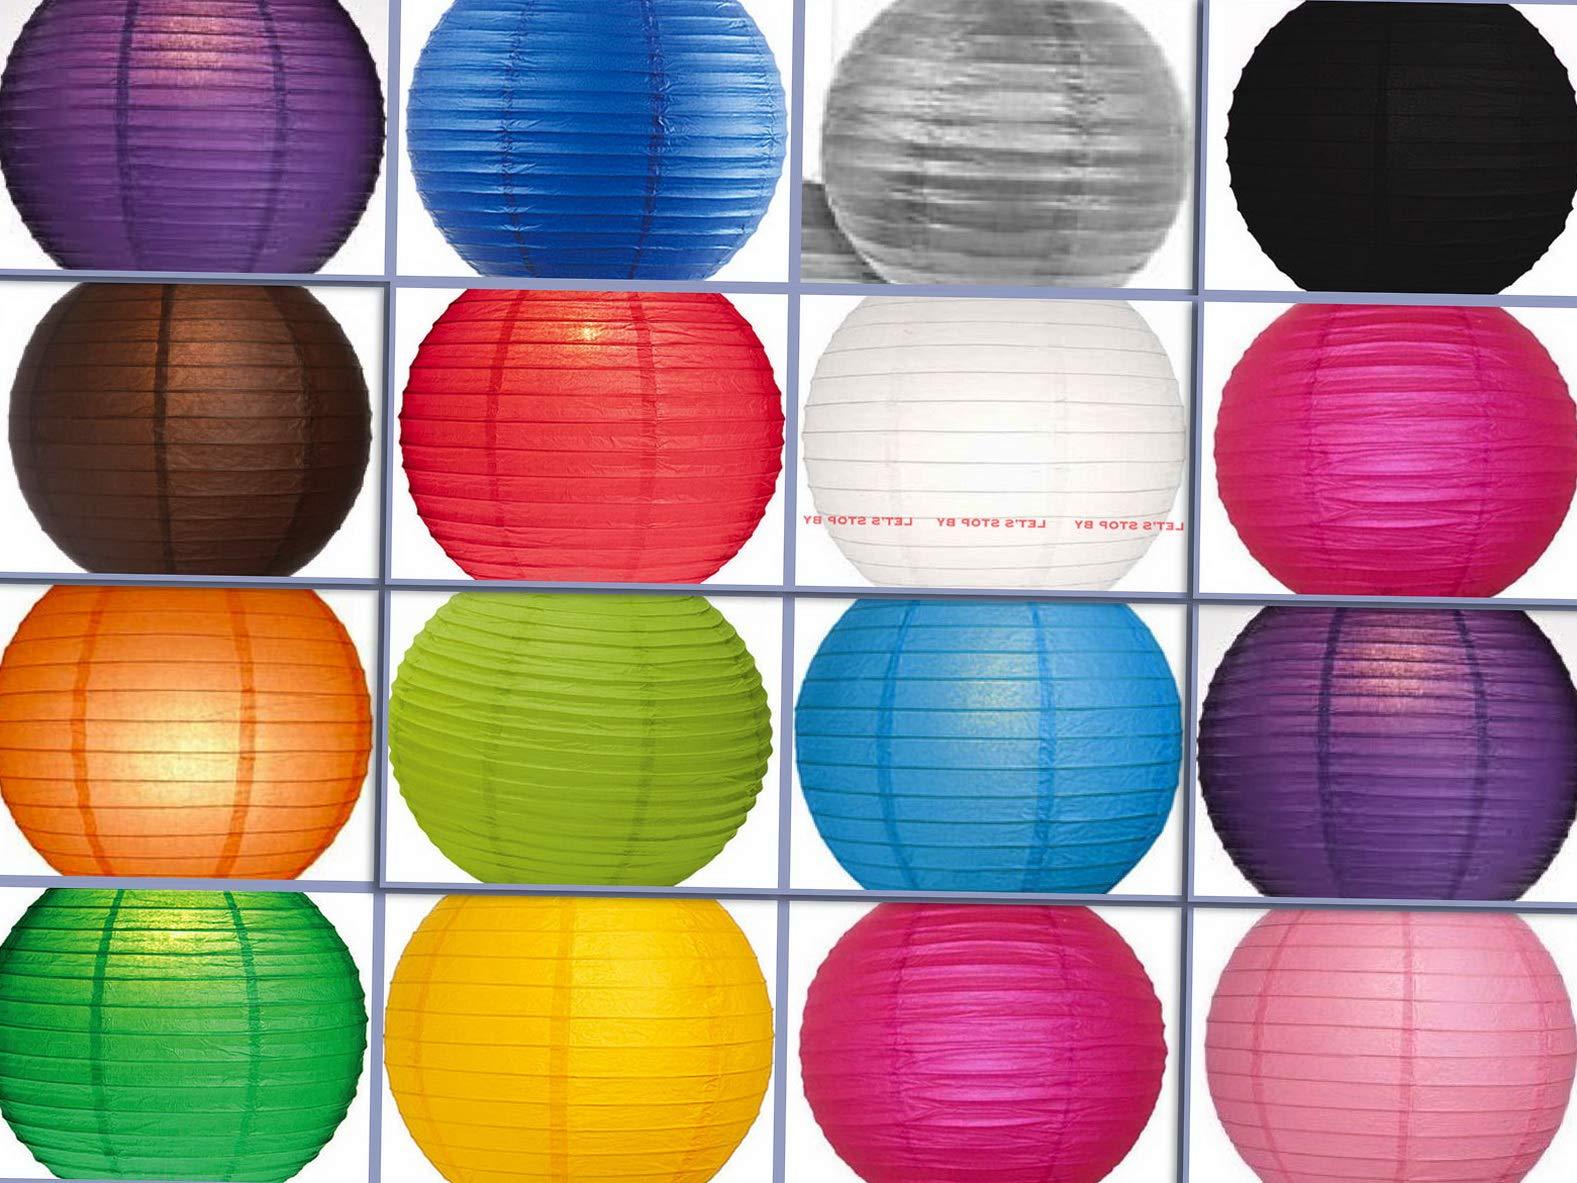 Mikash 12X Round Chinese Paper Lanterns lamp 12 Wedding Party Floral Event Decoration | Model WDDNGDCRTN - 25500 | with Light/Multi Color